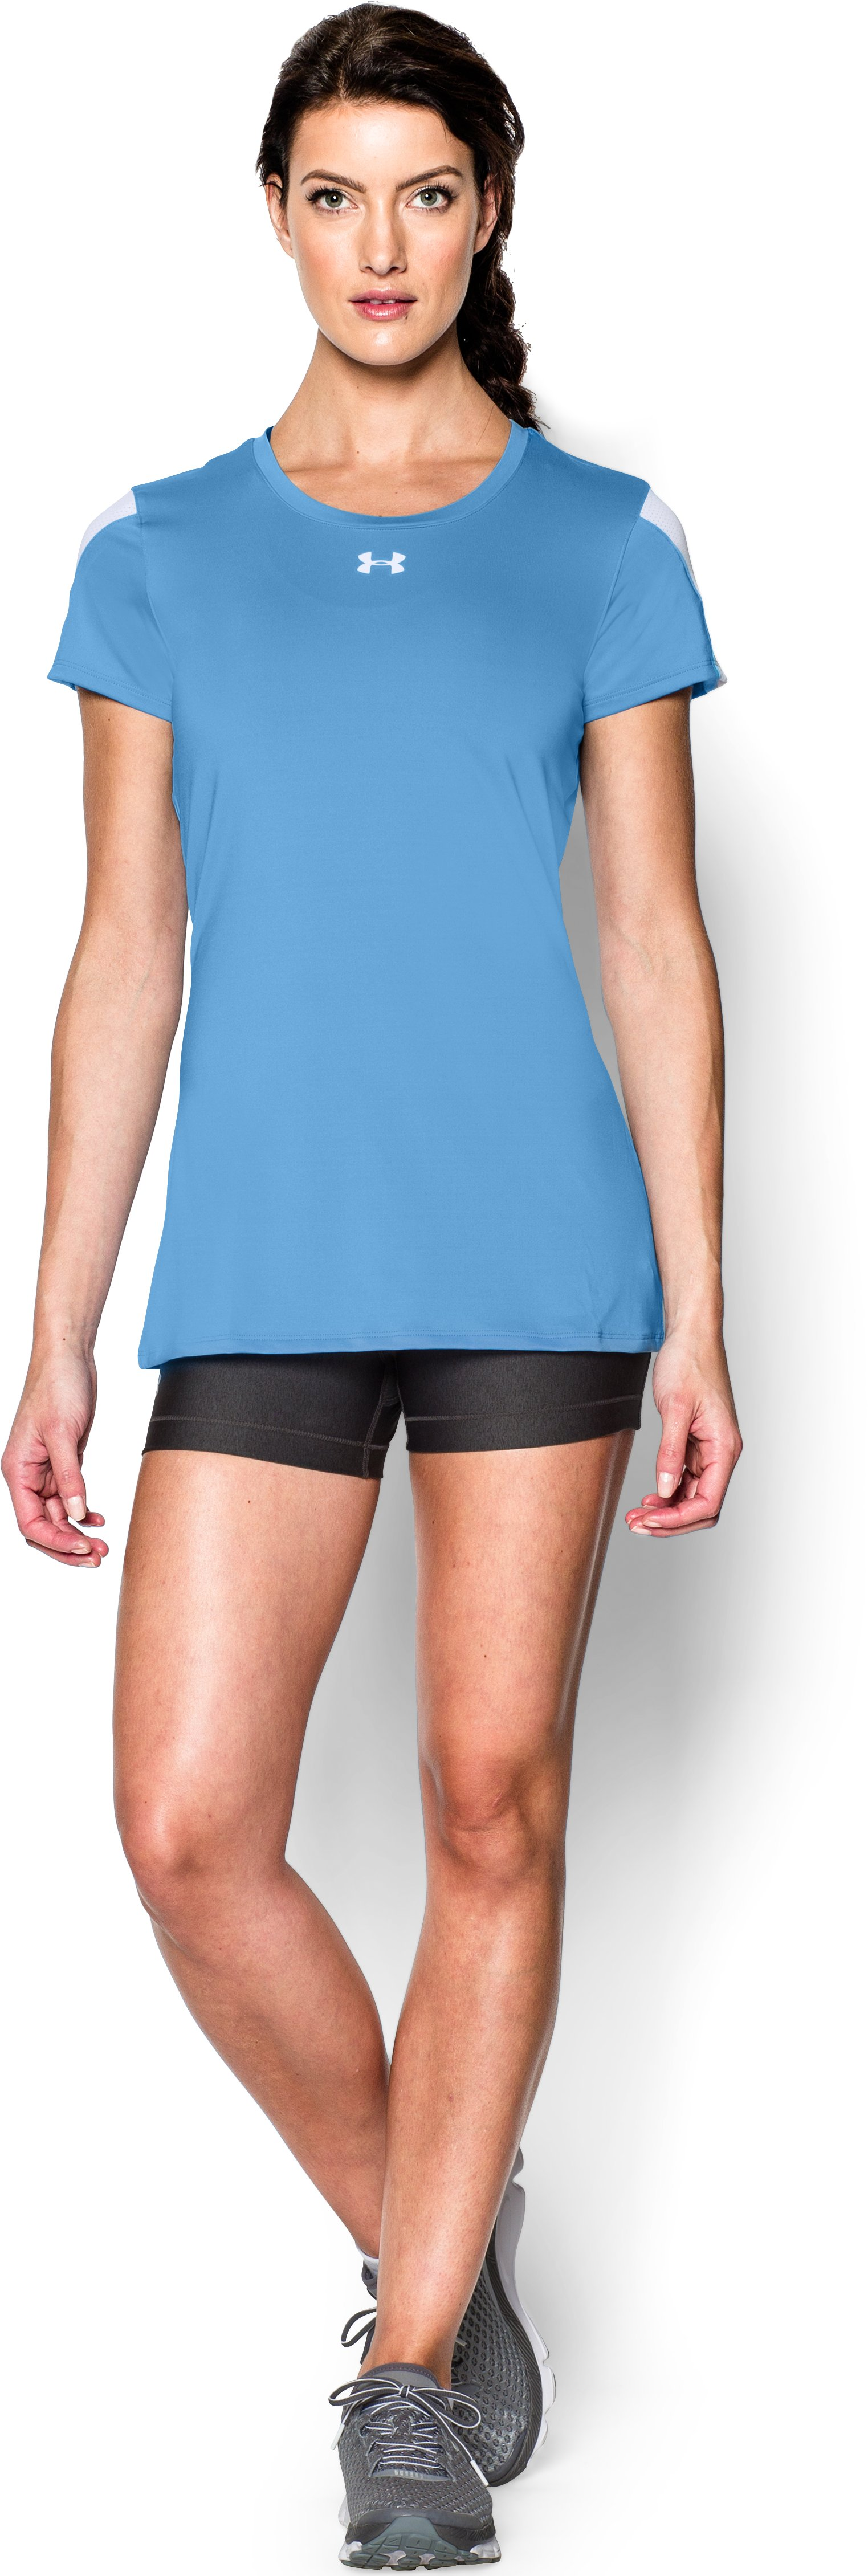 Women's UA Block Party Short Sleeve Jersey, Carolina Blue